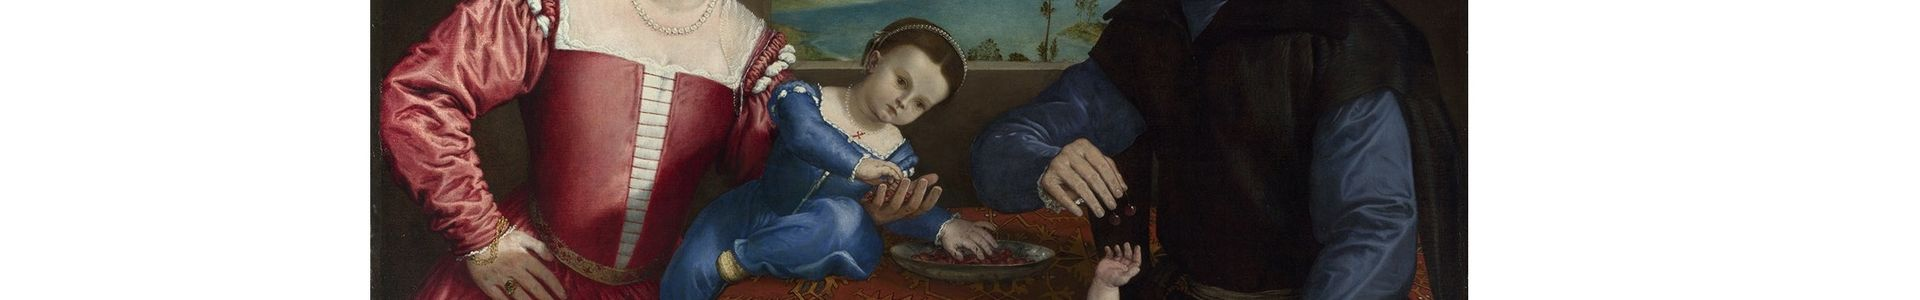 lorenzo lotto, portrait of giovanni della volta with his wife and children, completed 1547 (c) the national gallery, london.jpg